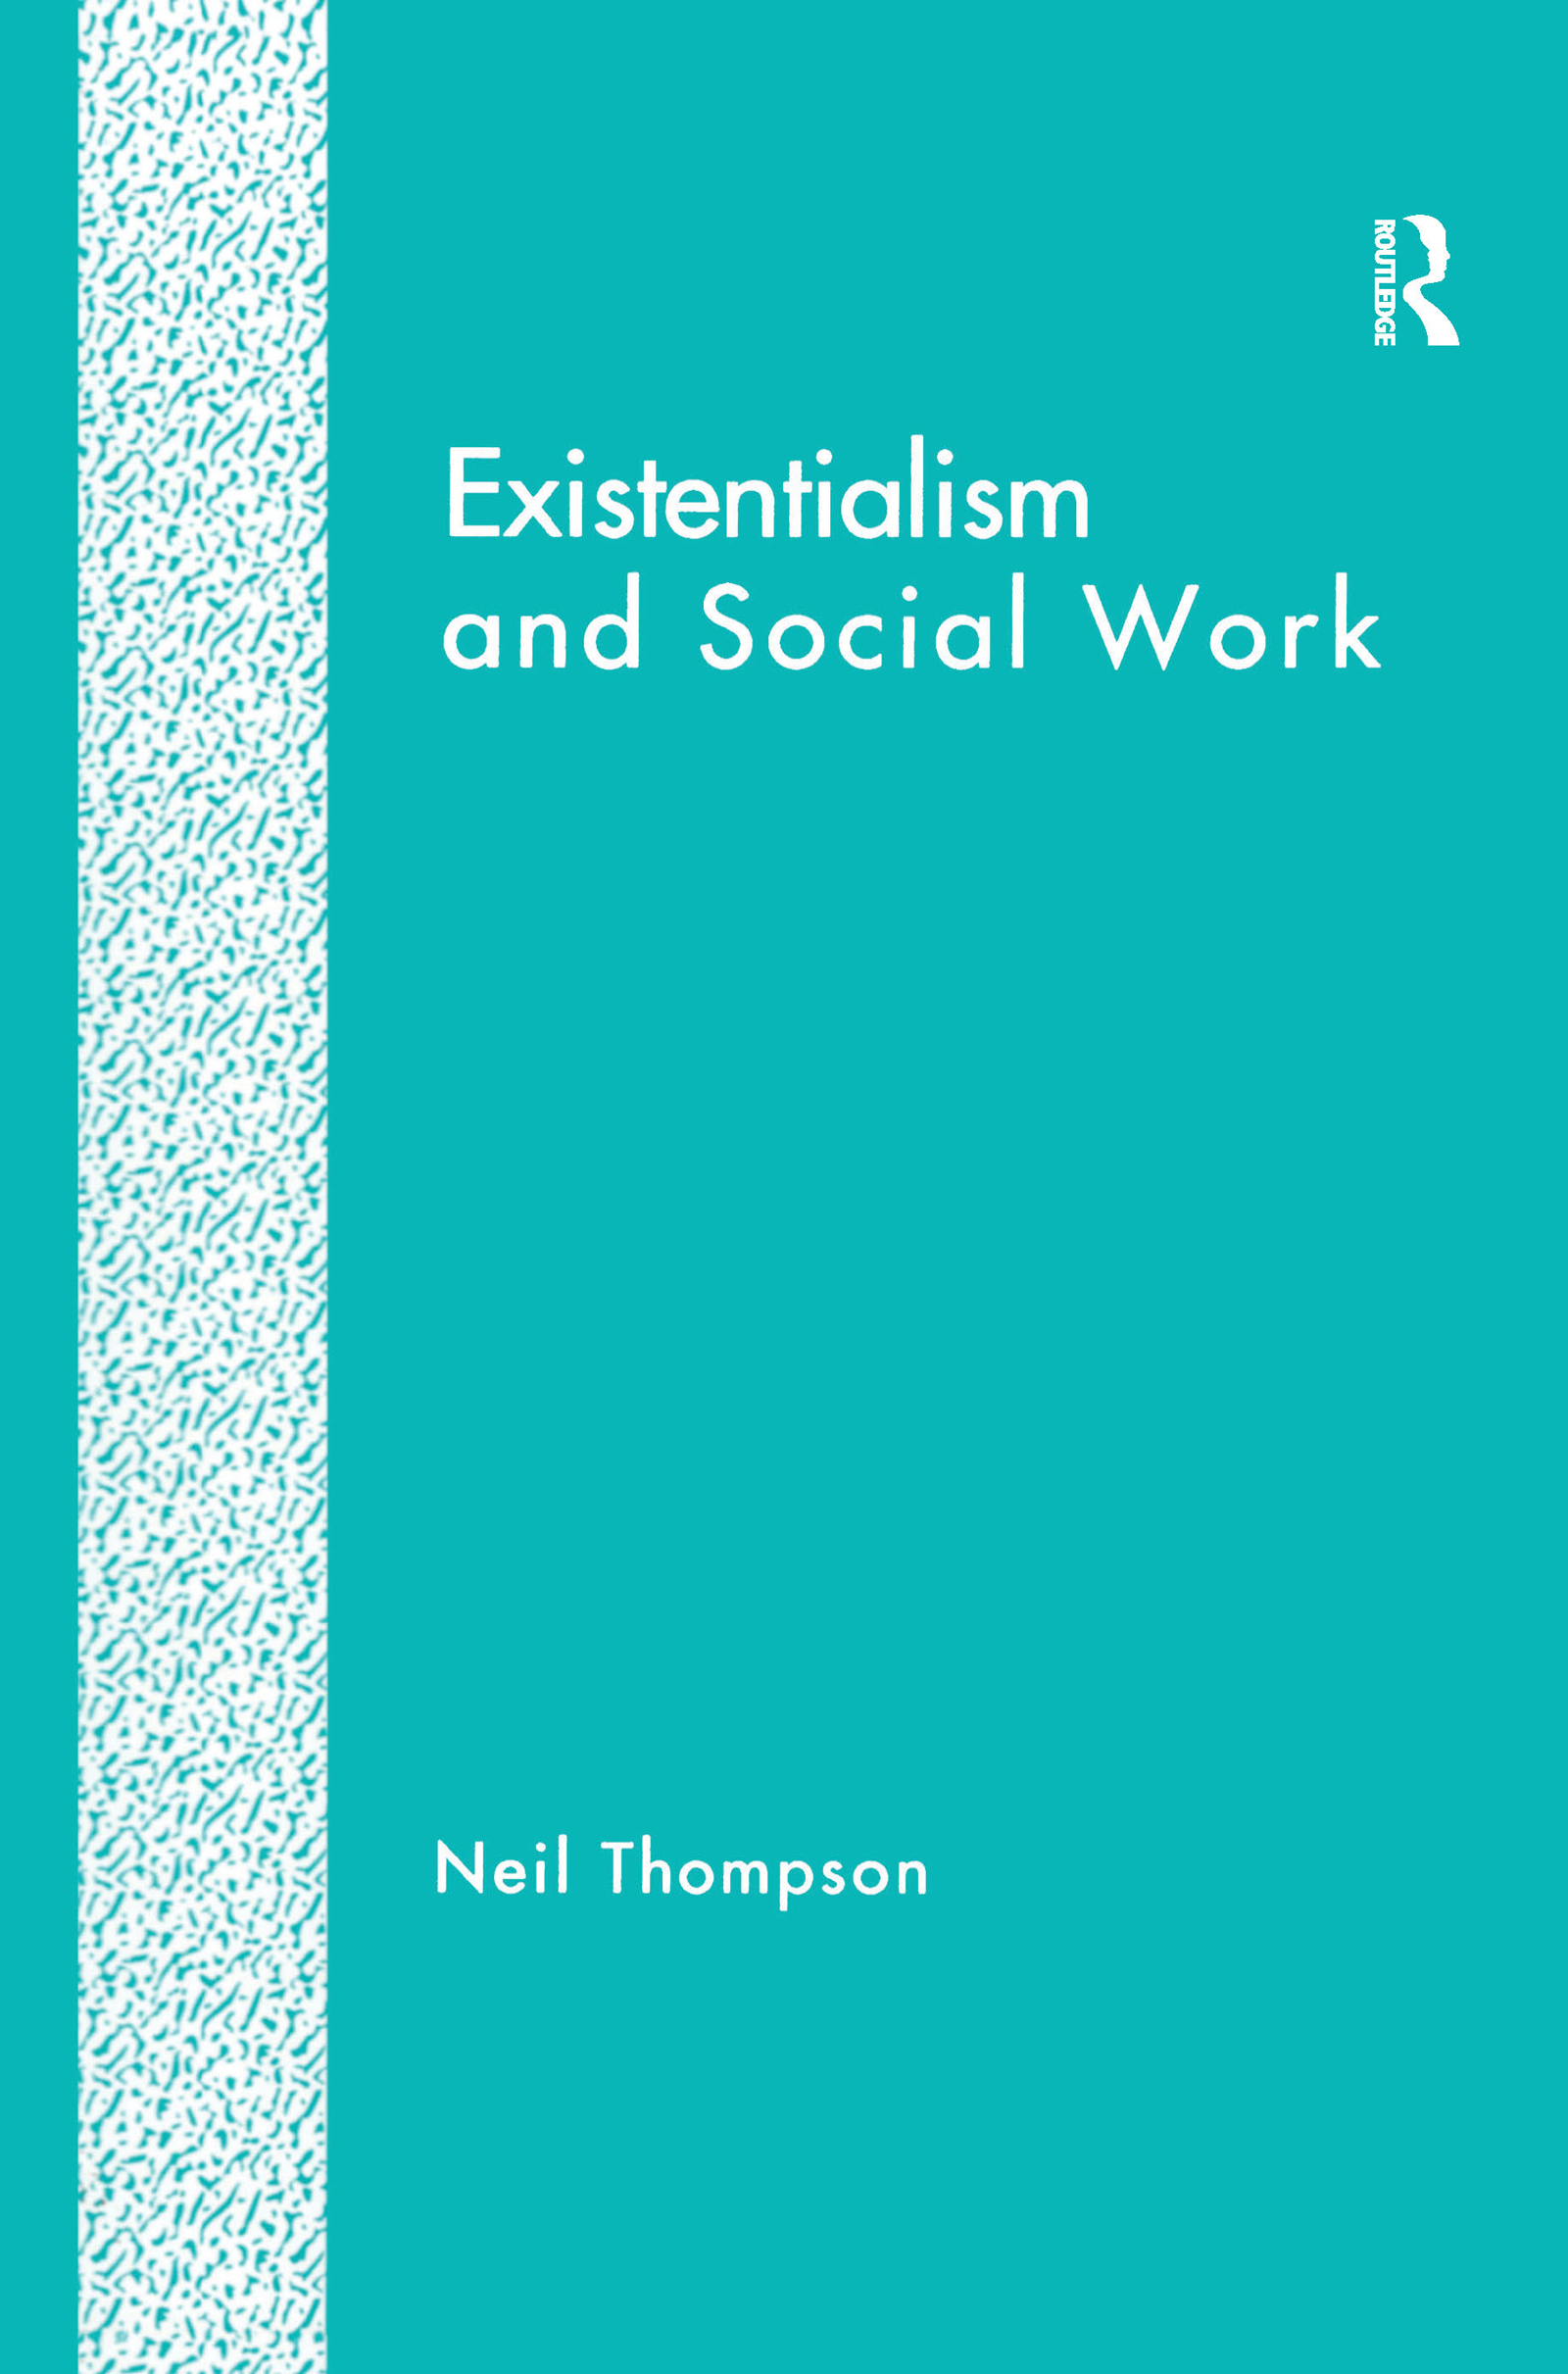 Existentialism and Social Work: 1st Edition (Hardback) book cover